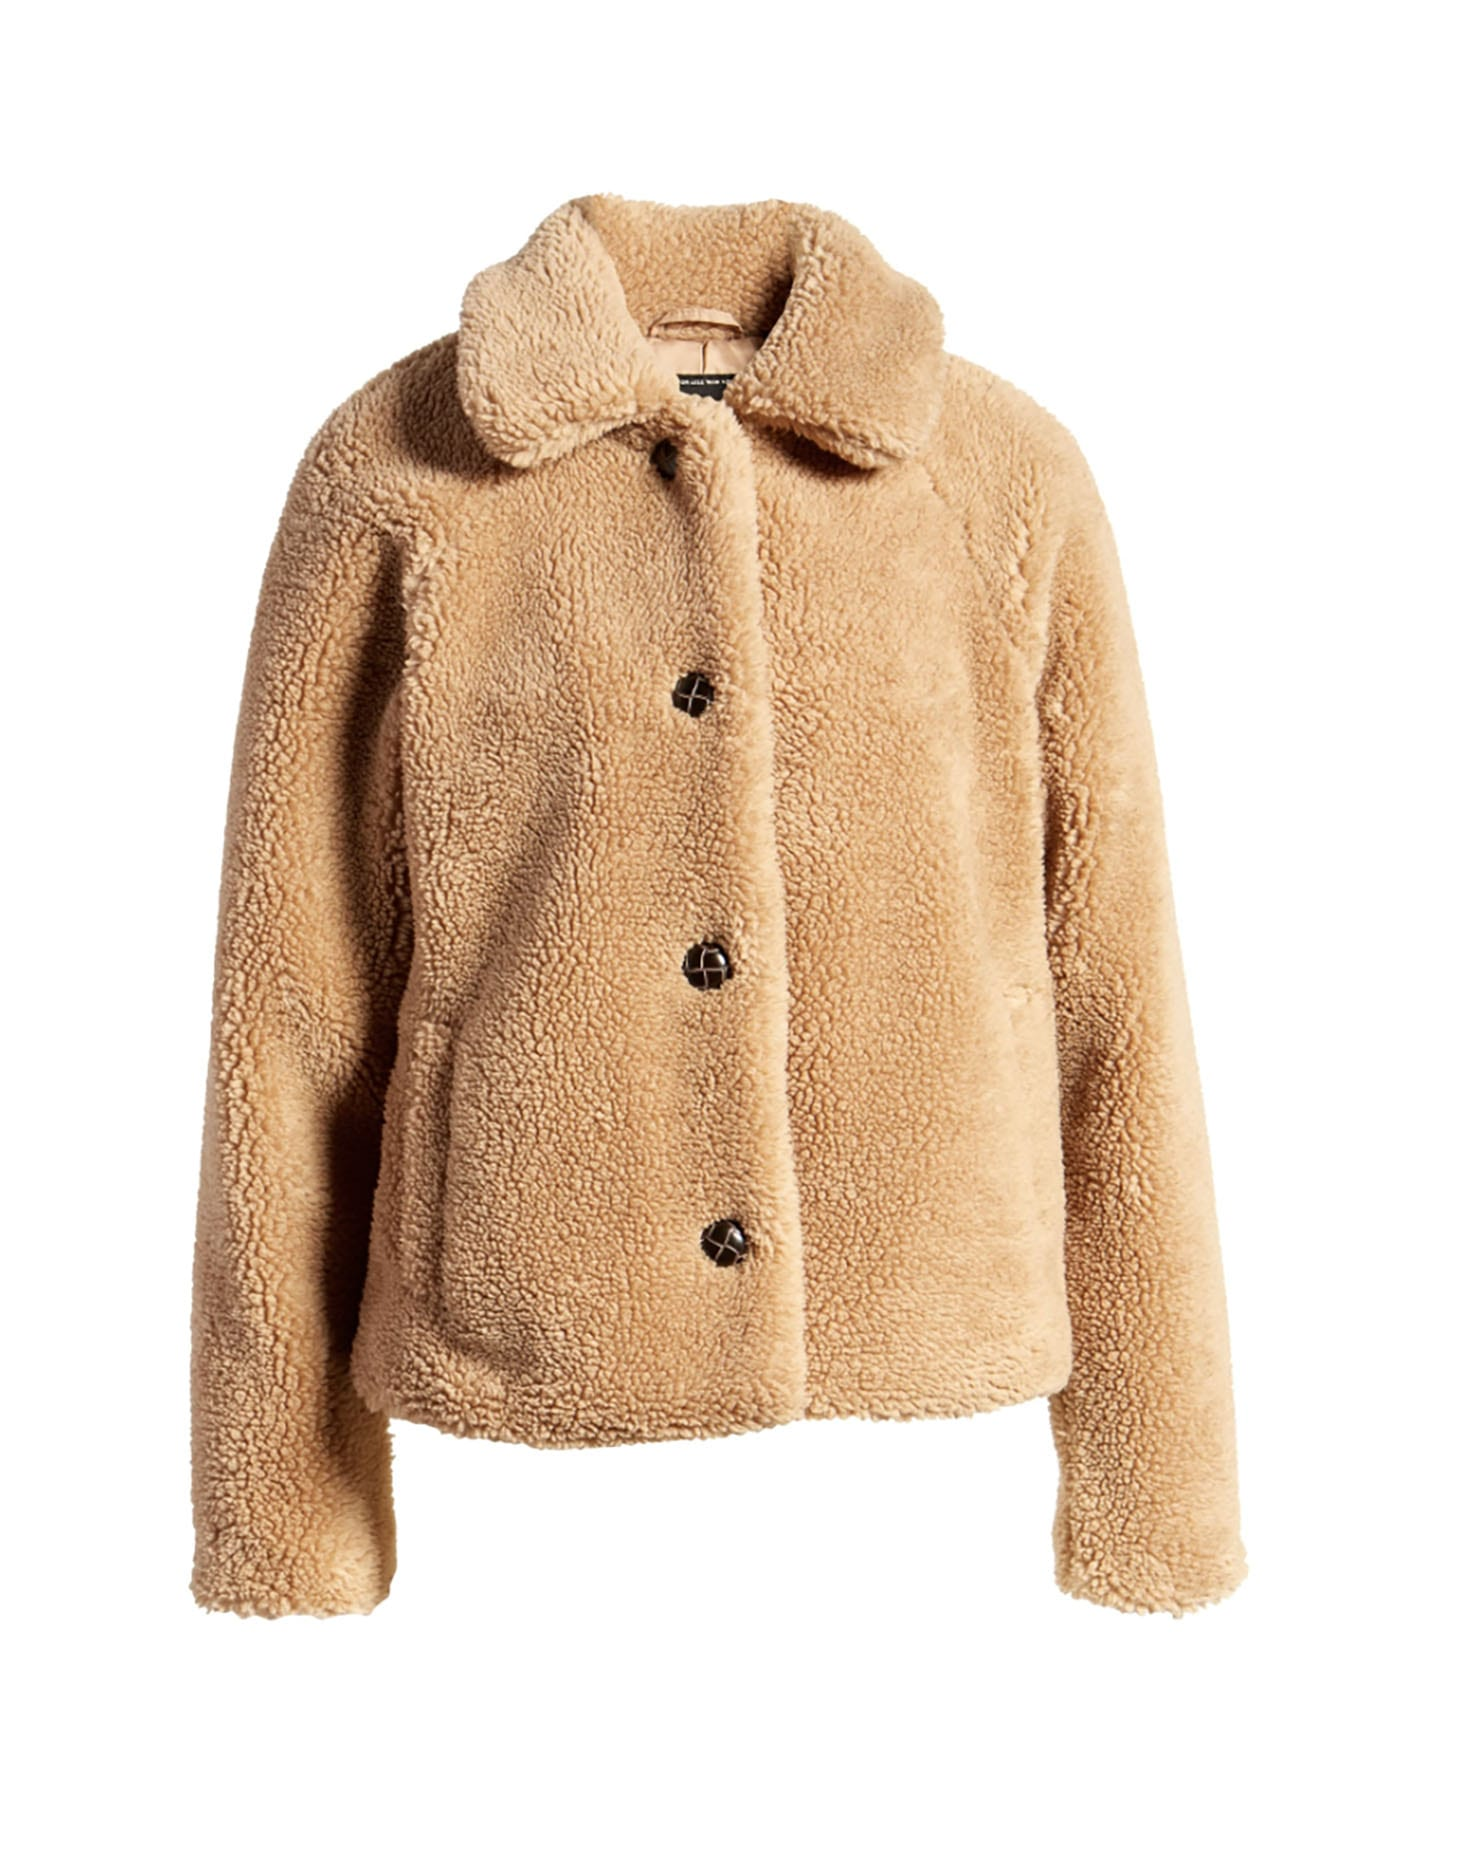 Jillian Harris Winter Coat Blog